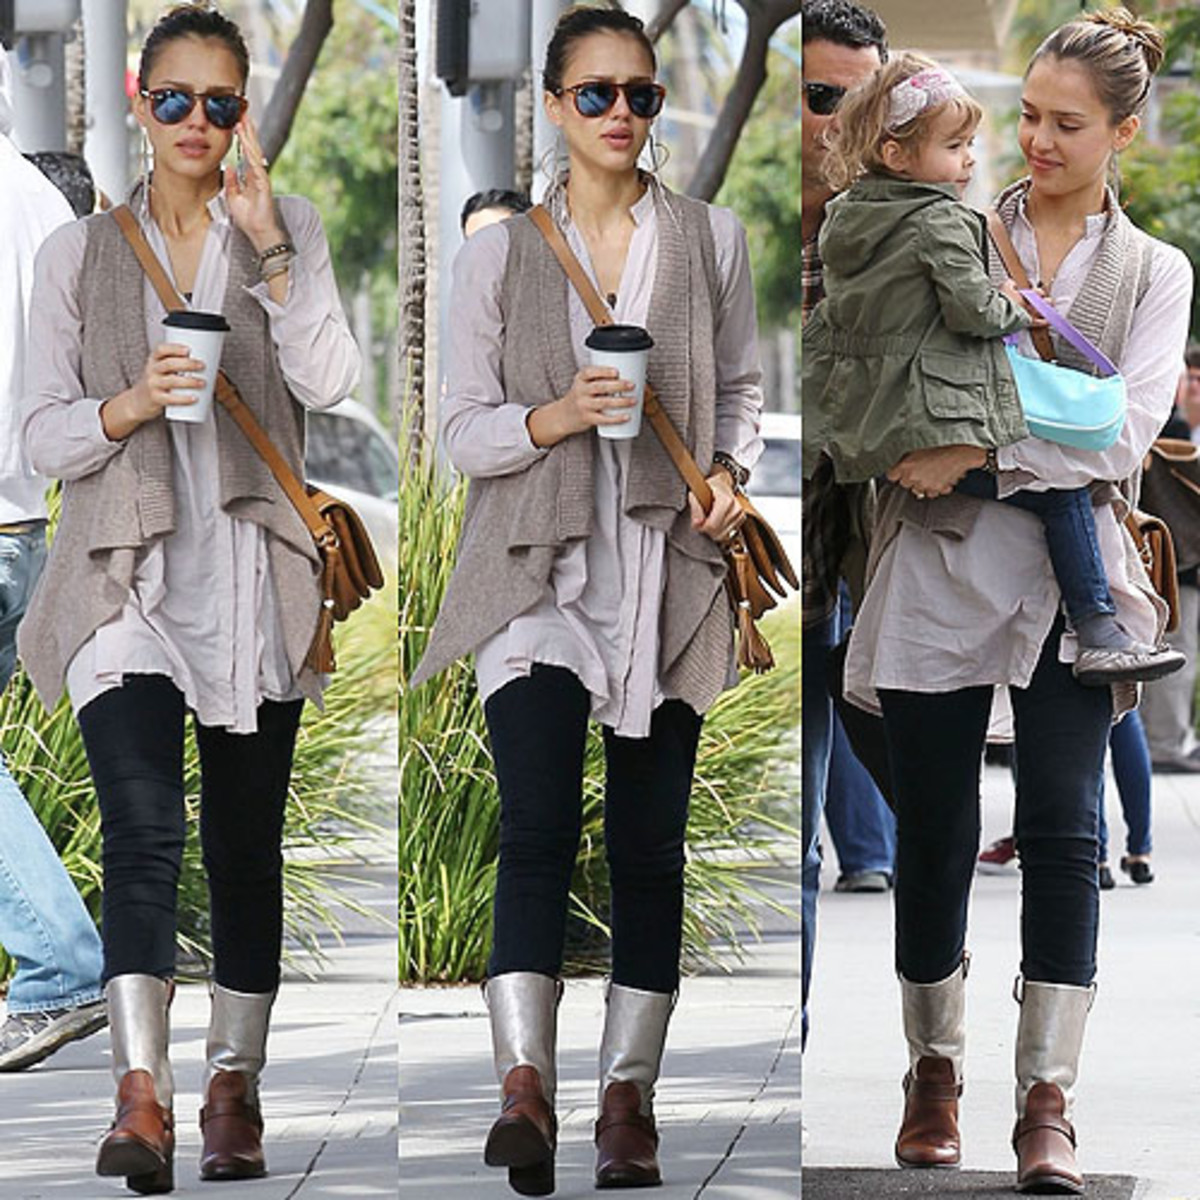 Jessica-Alba-and-family-out-in-Beverly-Hills